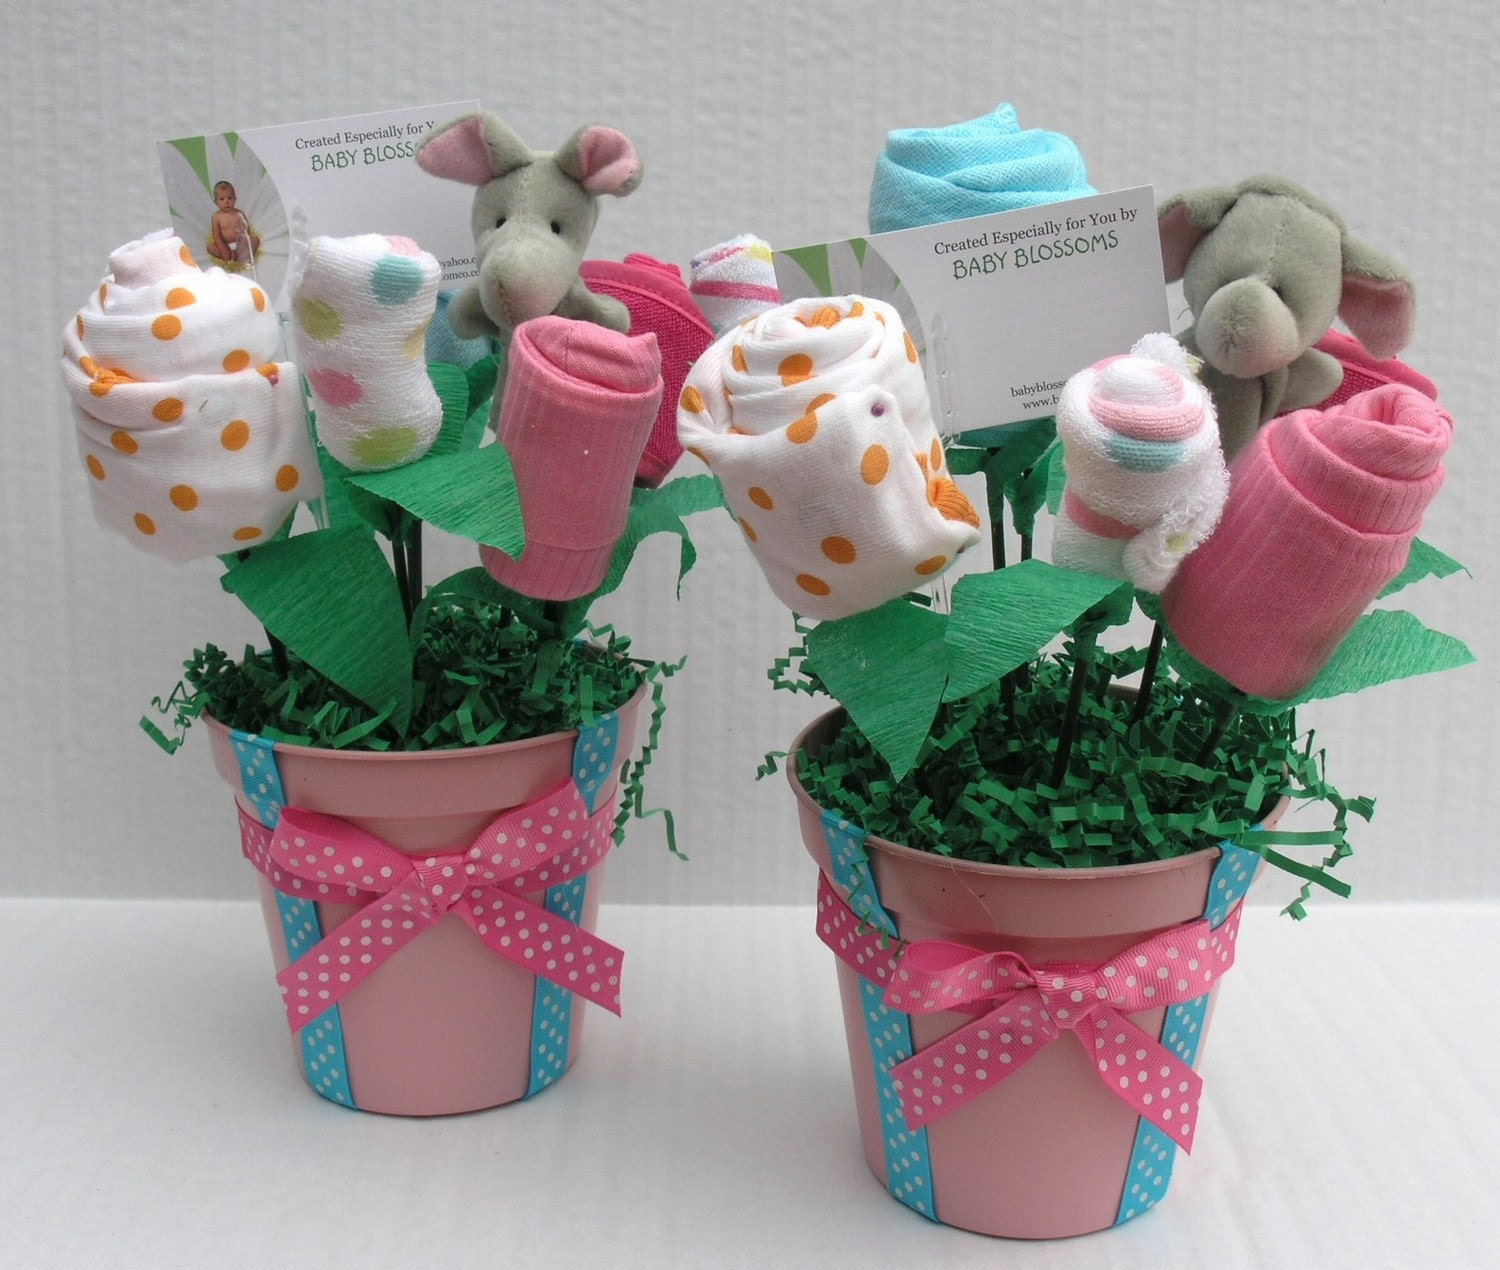 Baby Shower Centerpiece Ideas 1500 x 1270